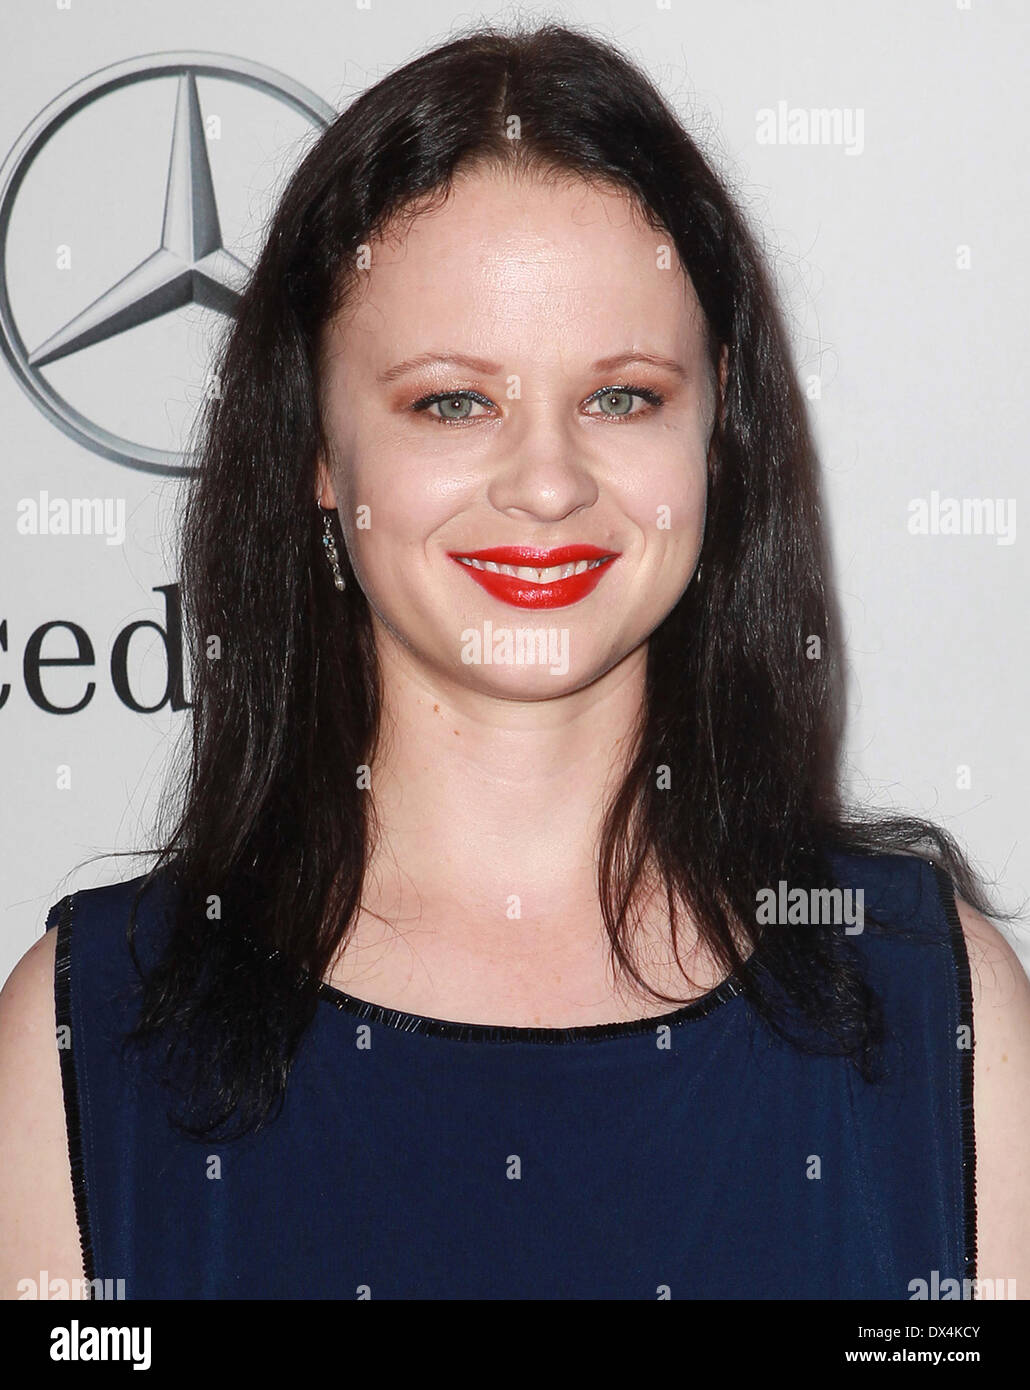 Thora Birch What Ever Happened To Thora Birch 2019 12 25